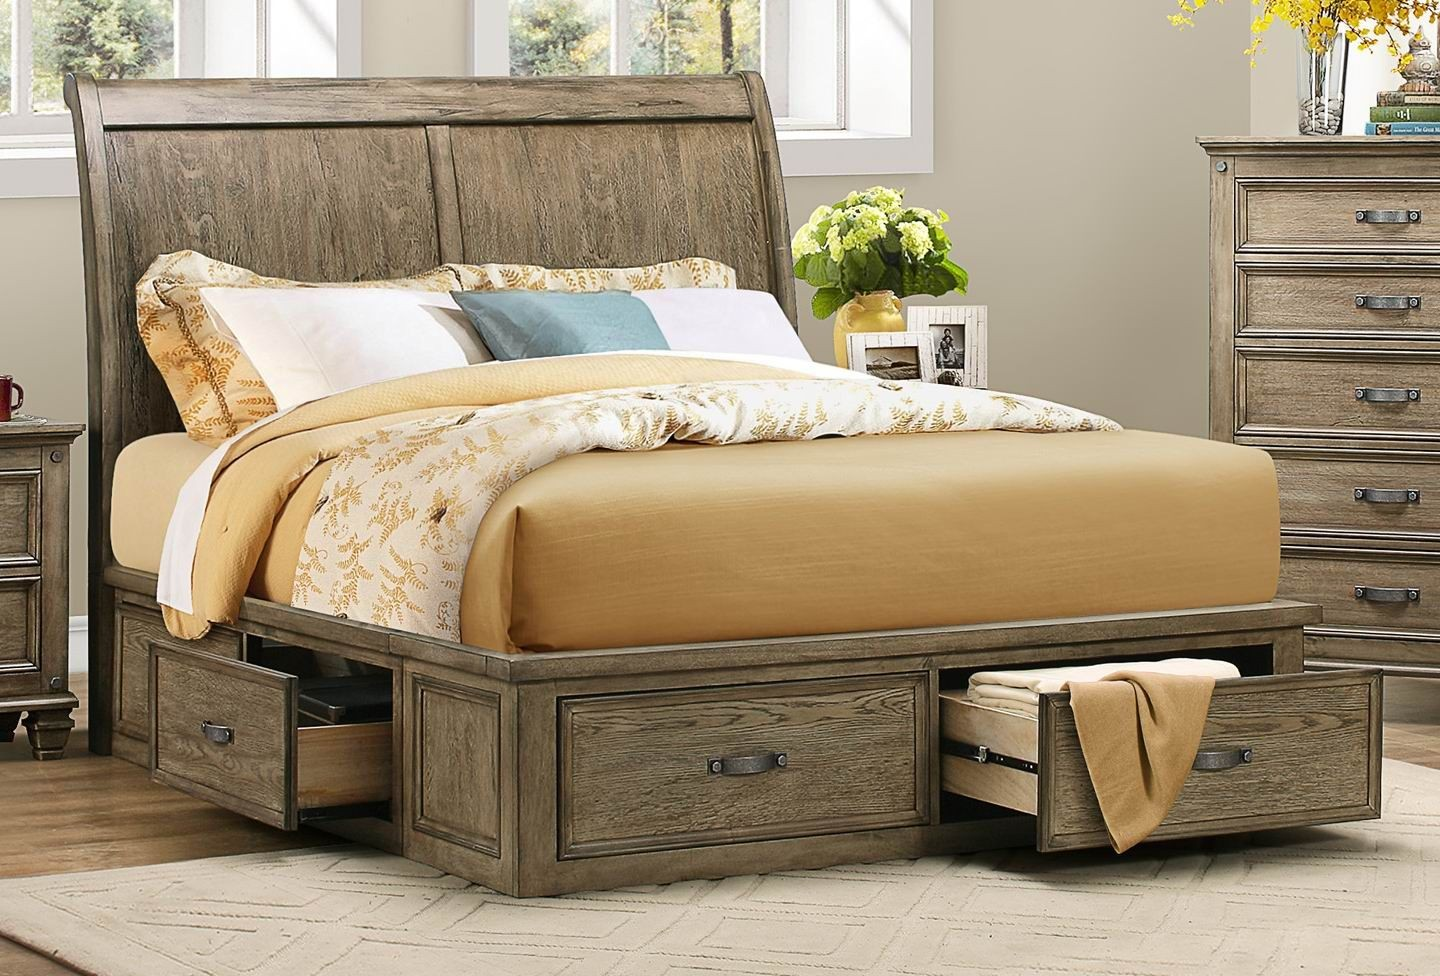 Sylvania driftwood cal king platform storage bed from - California king storage bedroom sets ...